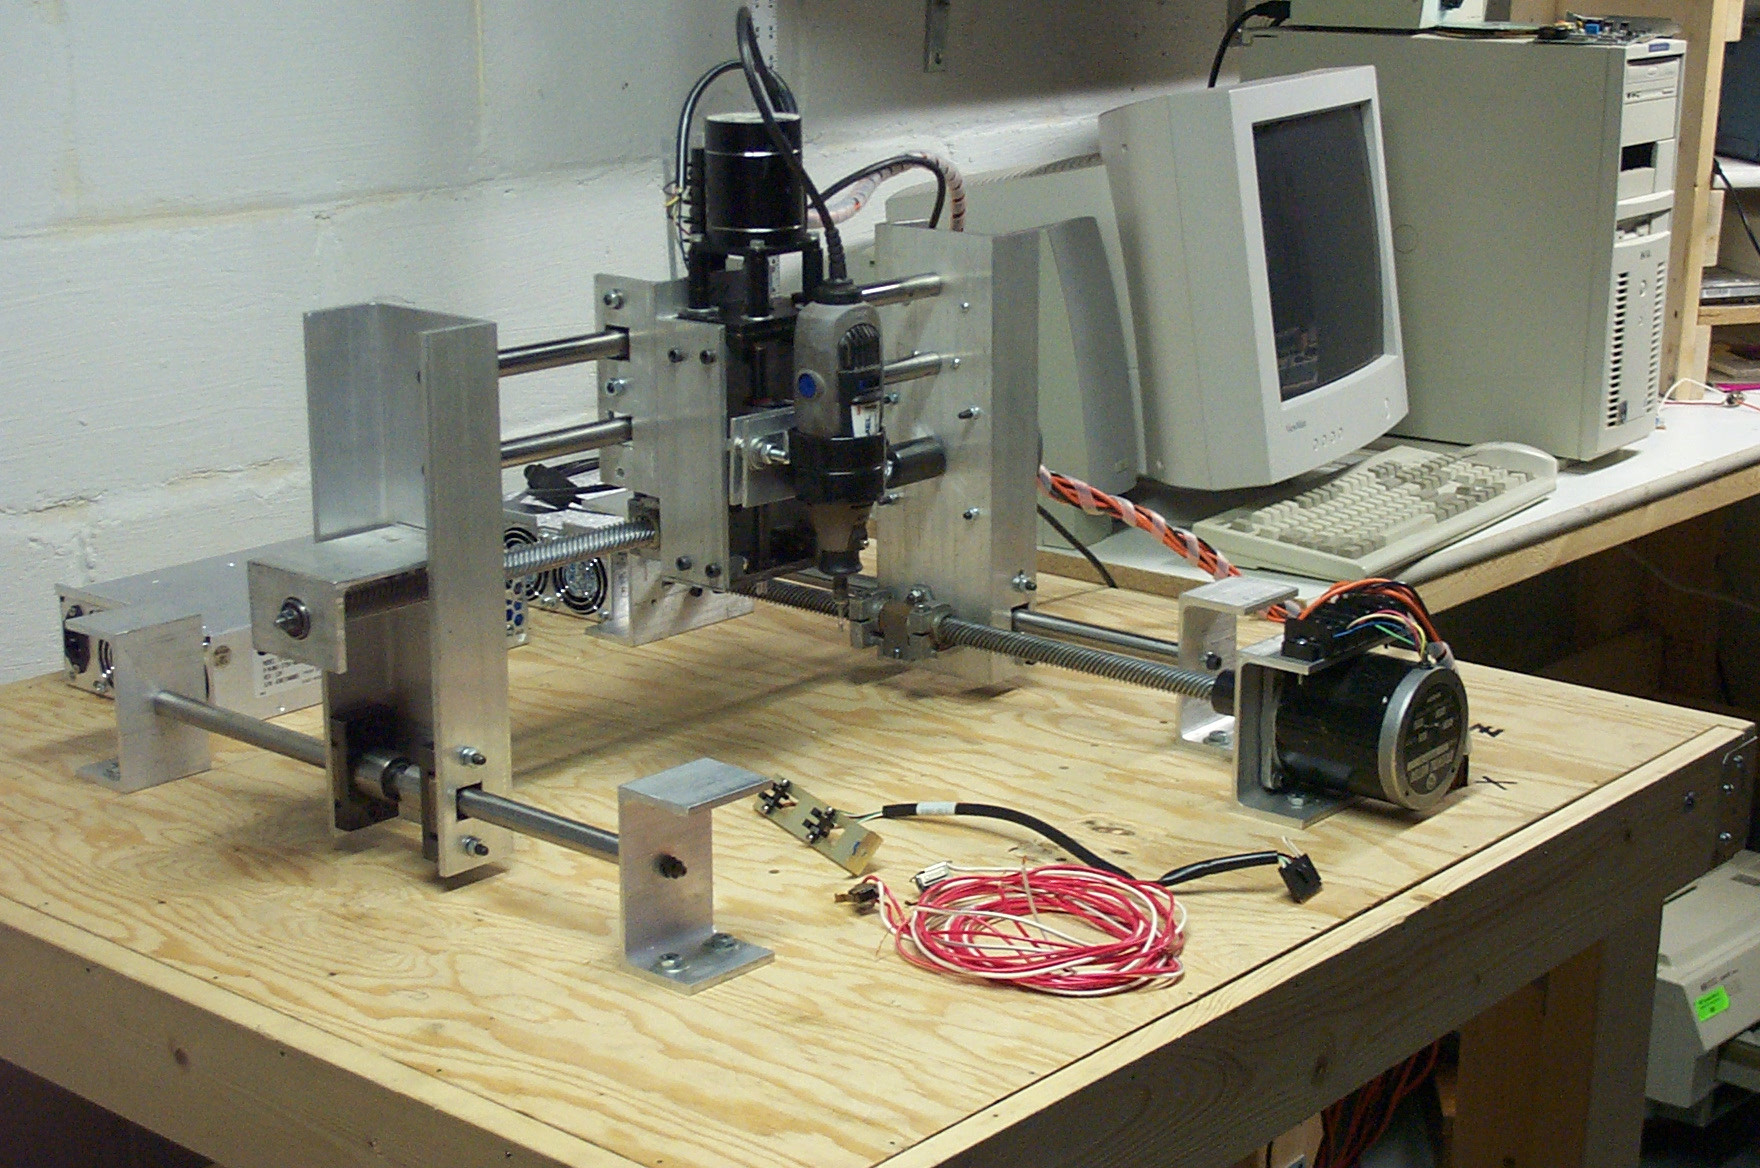 Best ideas about DIY Cnc Machine . Save or Pin Aaron Bowser's CNC Machine Hacked Gad s – DIY Tech Blog Now.